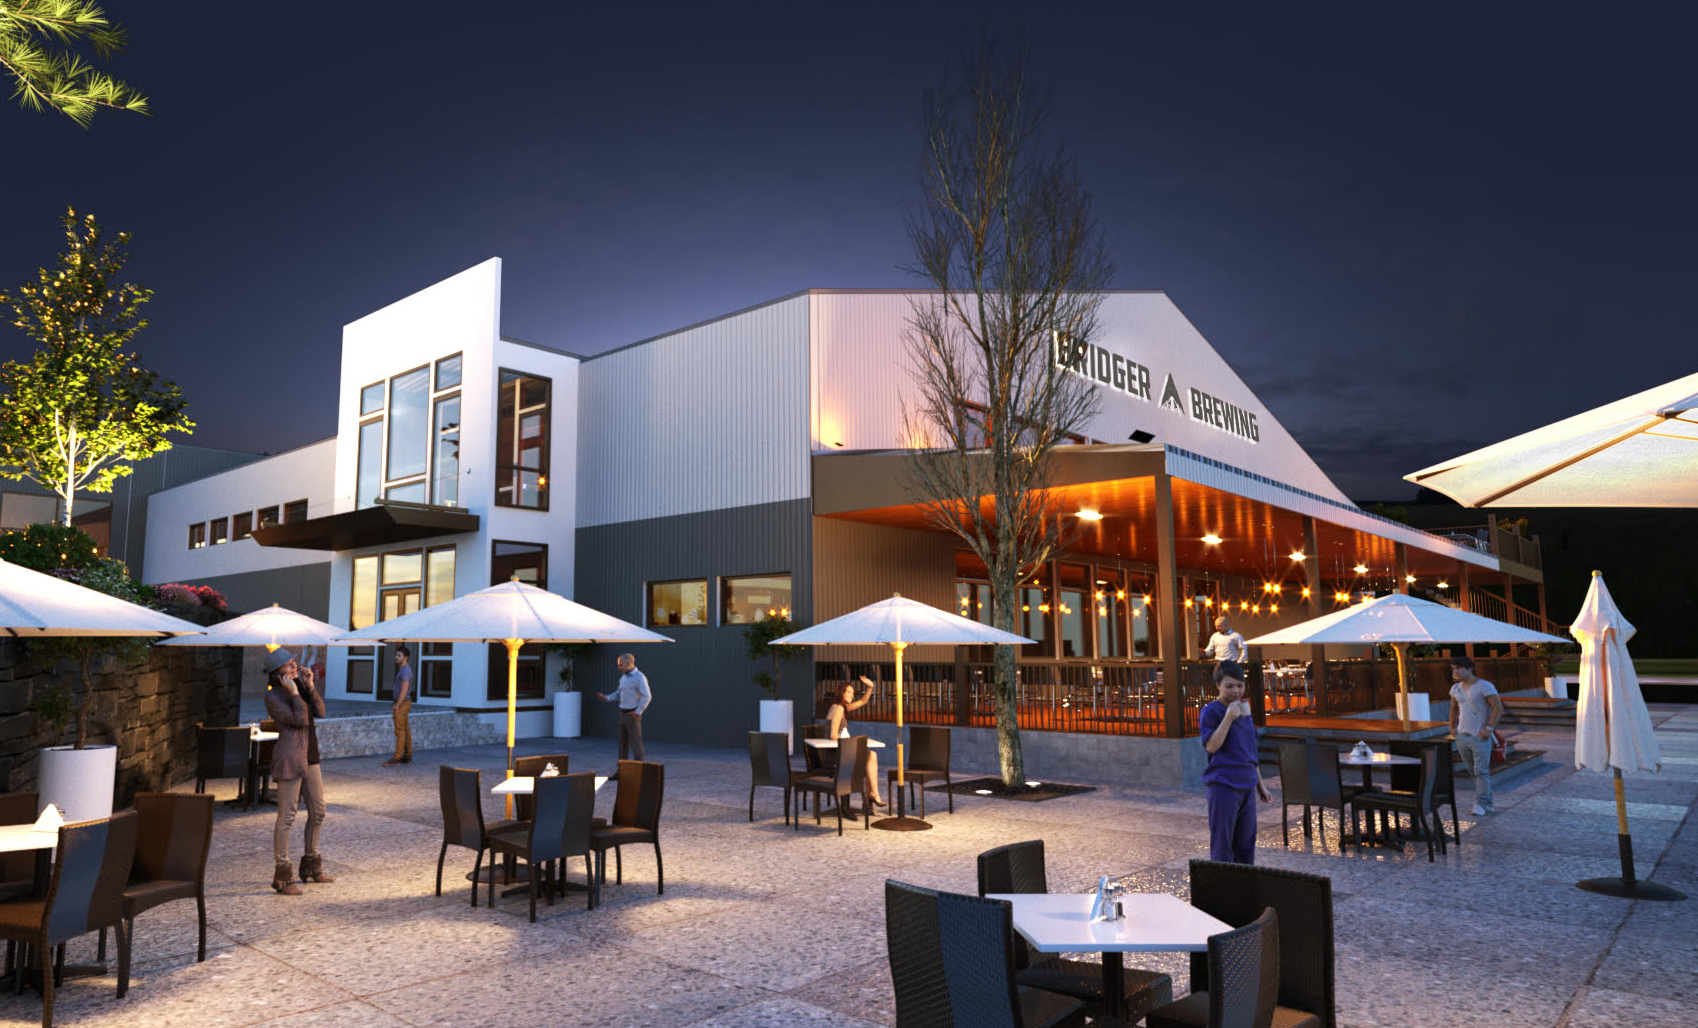 Rendering of building outdoors and patio space of Bridger Brewing Three Forks location